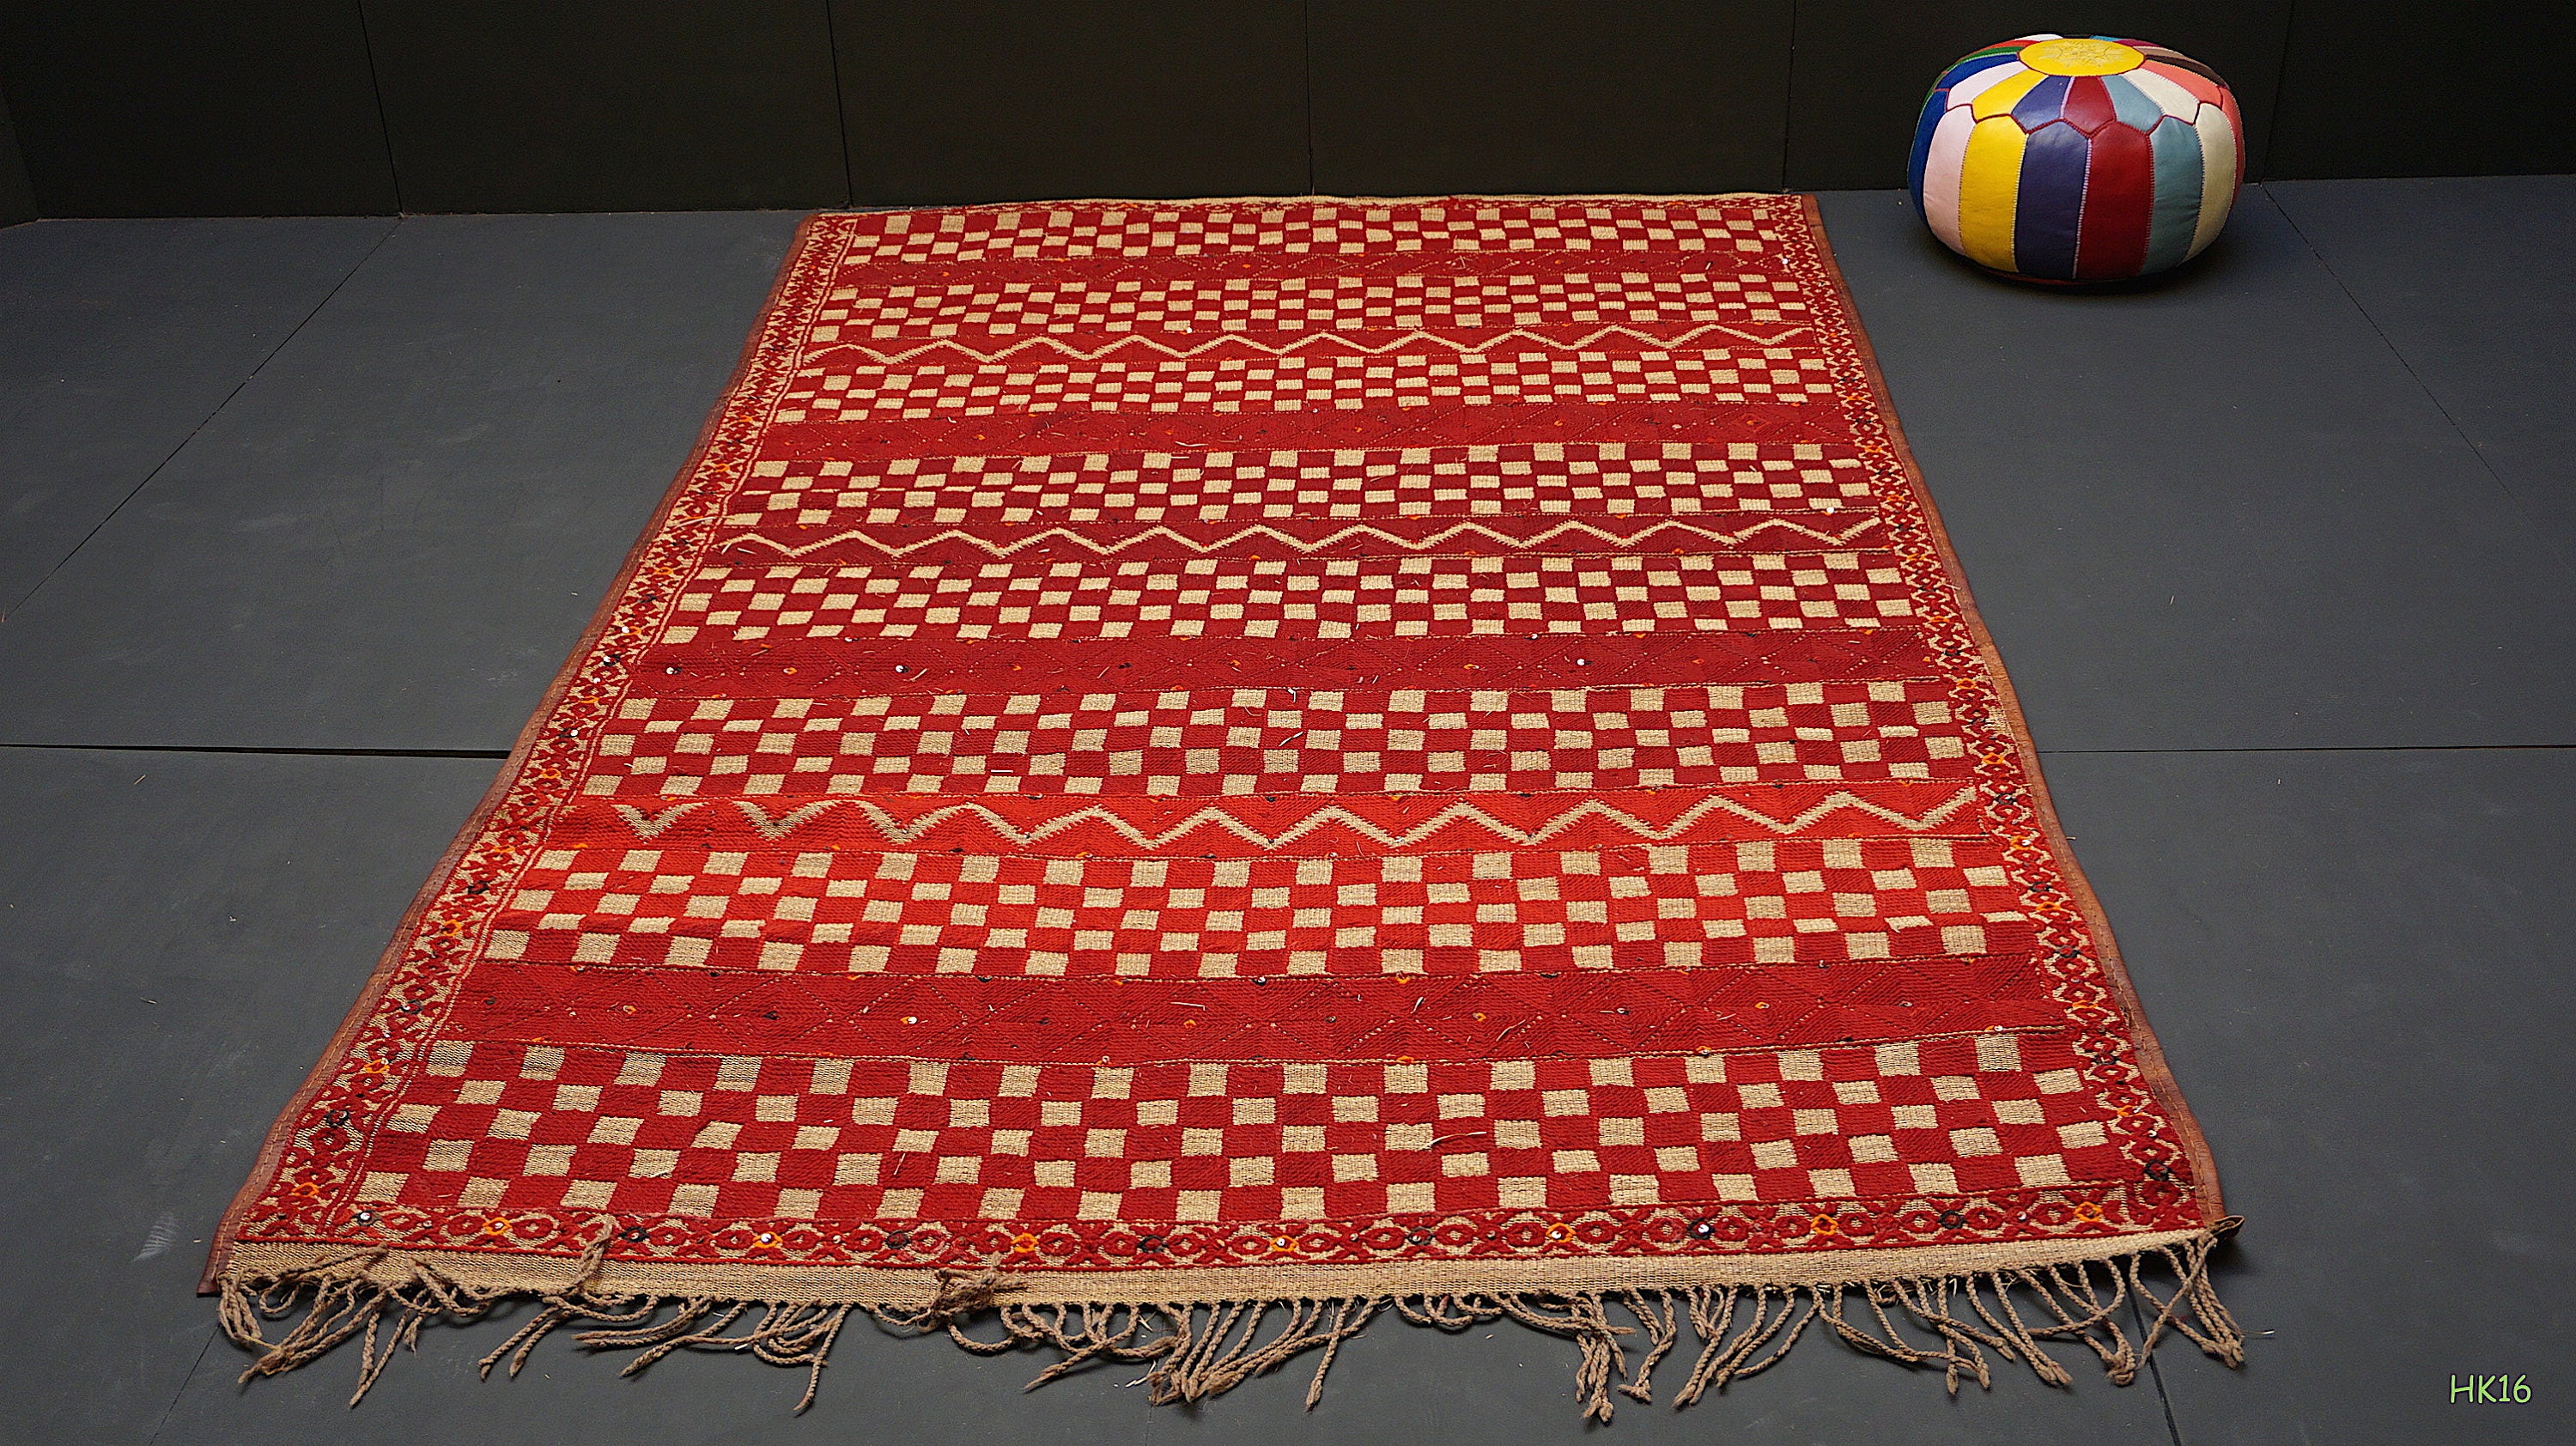 fiber basket weave jute rug market img product mat mats straw rugs natural world thumb do